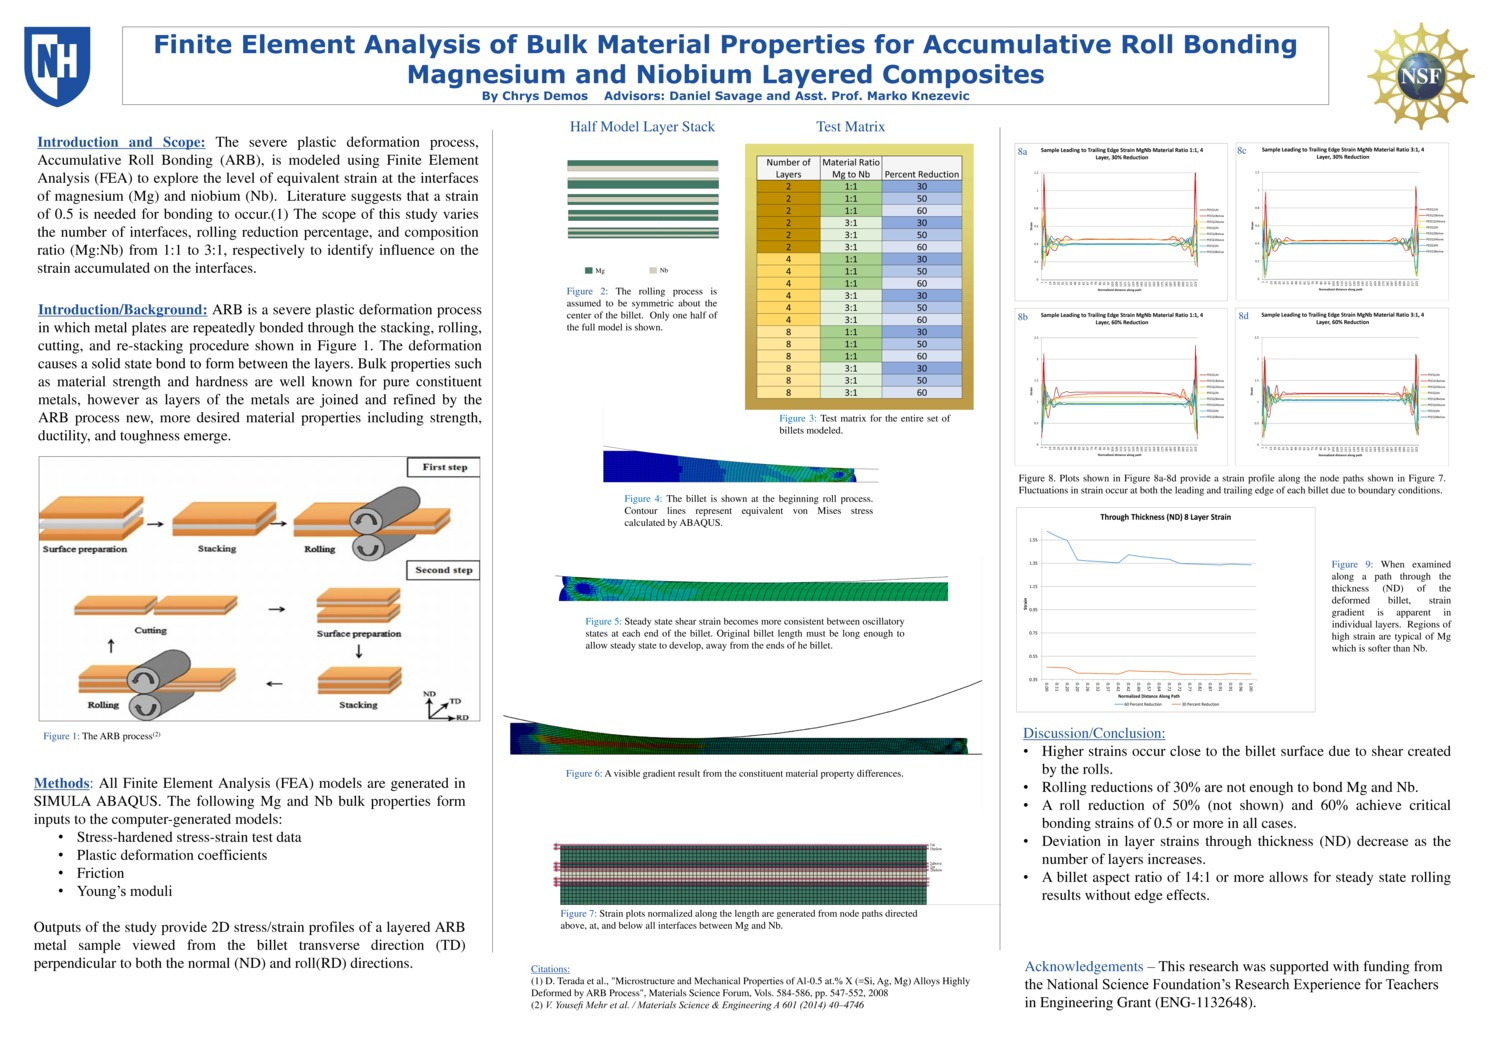 Finite Element Analysis Of Bulk Material Properties For Accumulative Roll Bonding Magnesium And Niobium Metal Matrix Composites by kitdemos